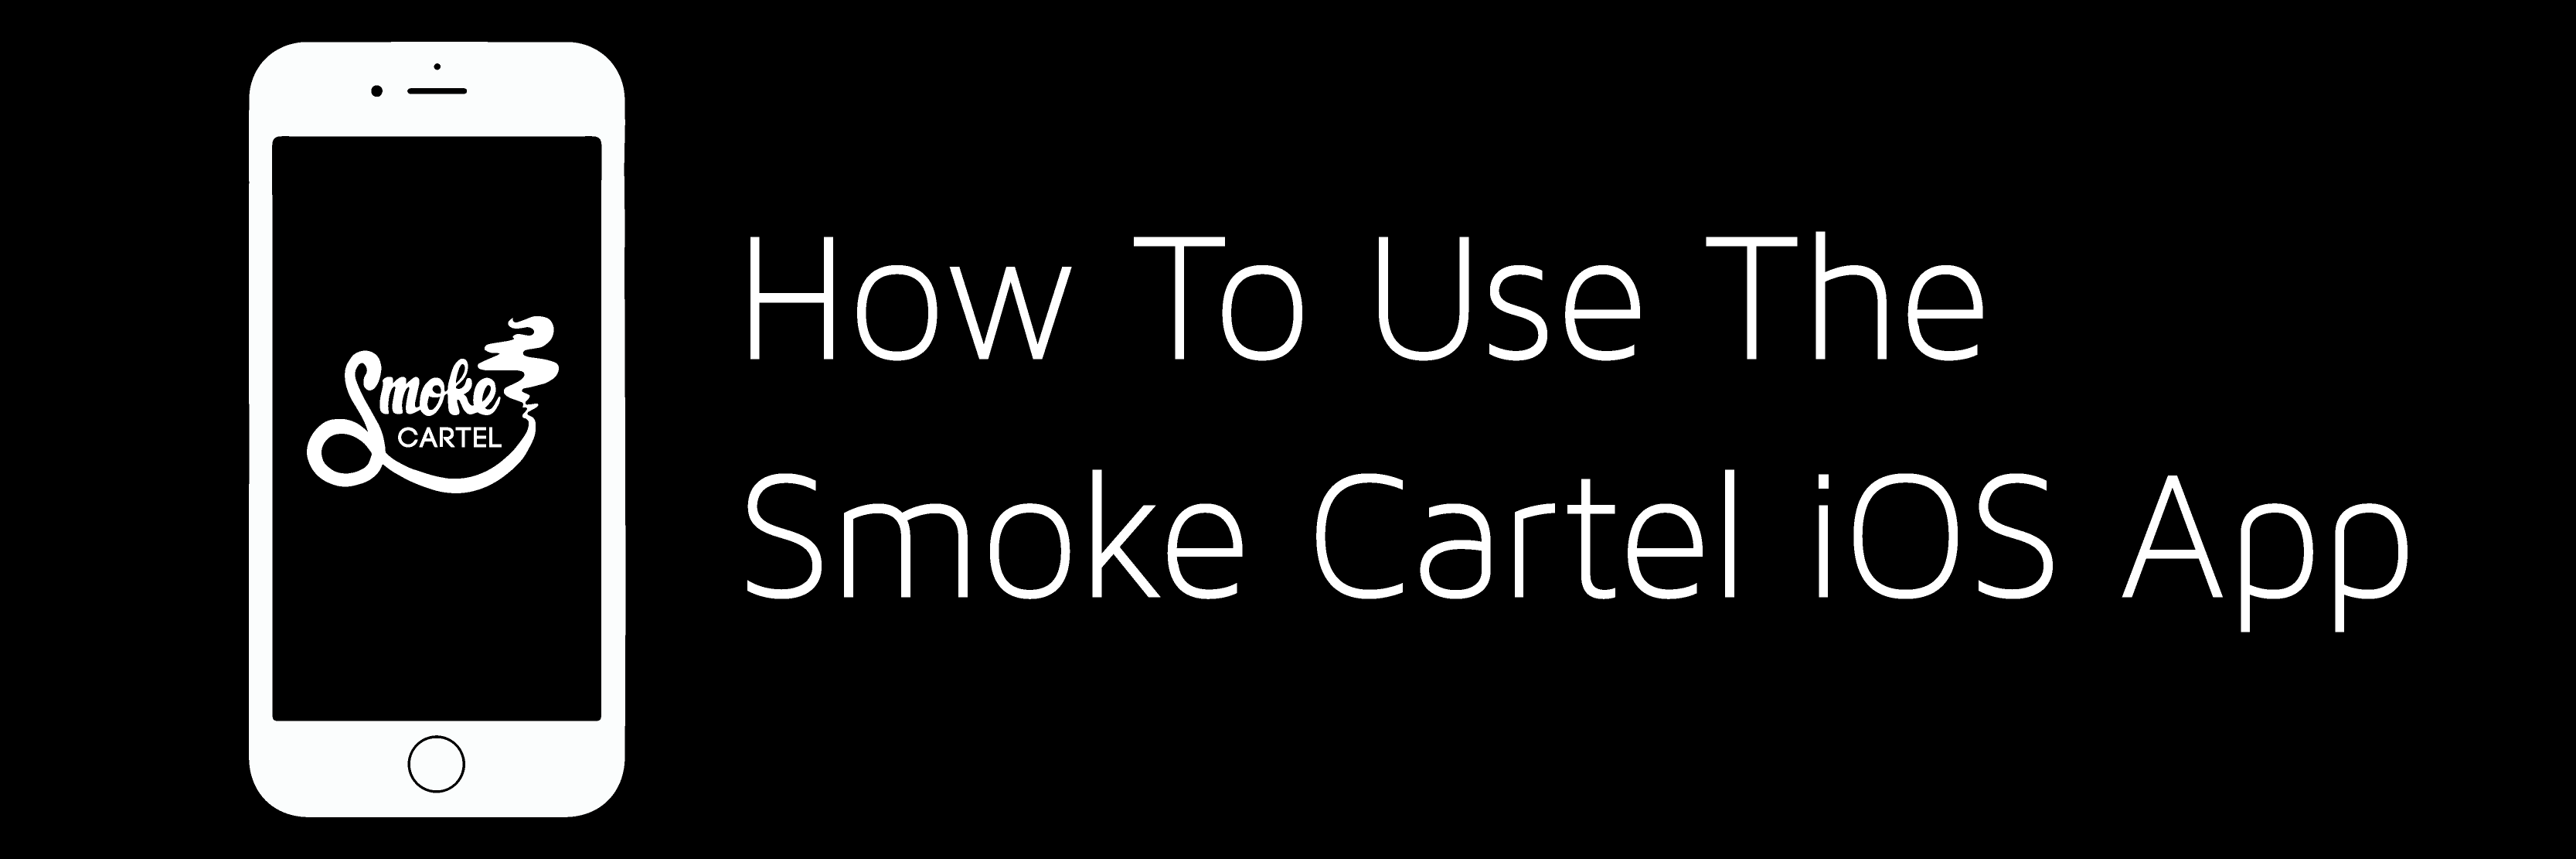 How to Use the Smoke Cartel iOS App